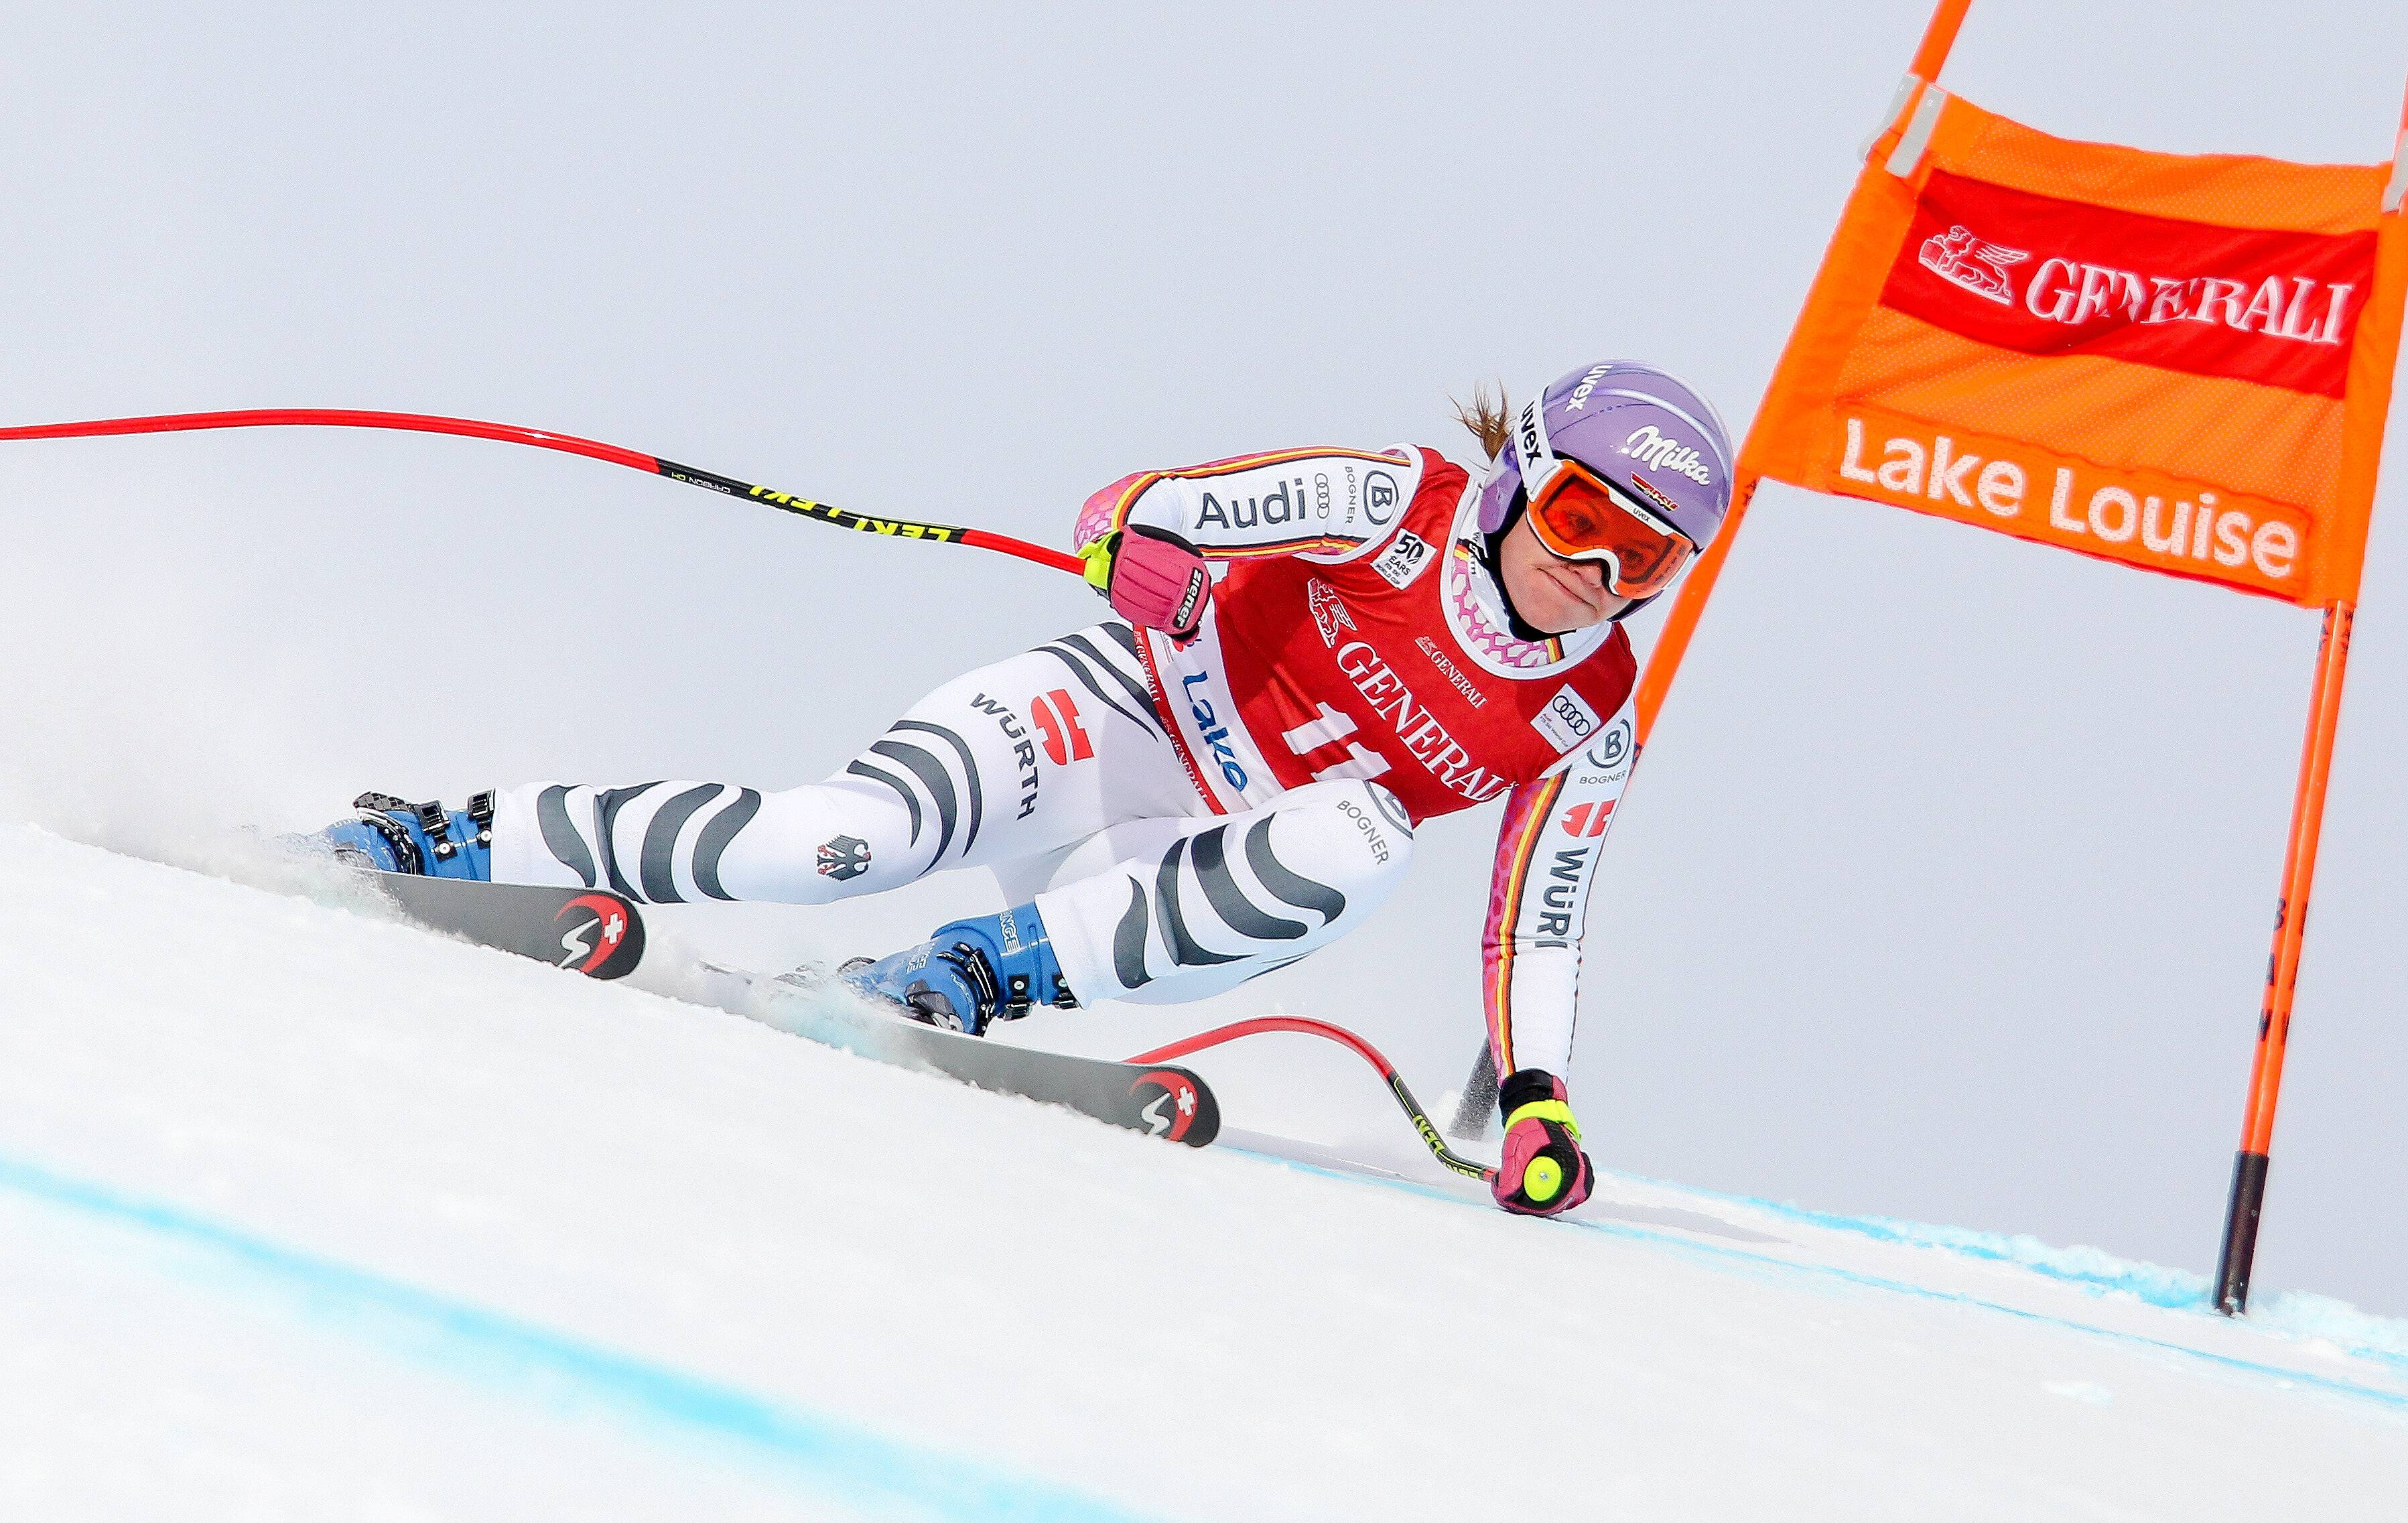 ALPINE SKIING - FIS WC Lake Louise LAKE LOUISE,CANADA,03.DEC.16 - ALPINE SKIING - FIS World Cup Lake Louise, Downhill, Ladies. Image Shows Viktoria Rebensburg (GER). Keywords: Stoeckli. PUBLICATIONxINxGERxHUNxONLY GEPAxpictures/xMarioxKneisl  Alpine Skiing FIS WC Lake Louise Lake Louise Canada 03 DEC 16 Alpine Skiing FIS World Cup Lake Louise Downhill Ladies Image Shows Viktoria Vine Castle Ger Keywords Stoeckli PUBLICATIONxINxGERxHUNxONLY GEPAxpictures XMarioxKneisl